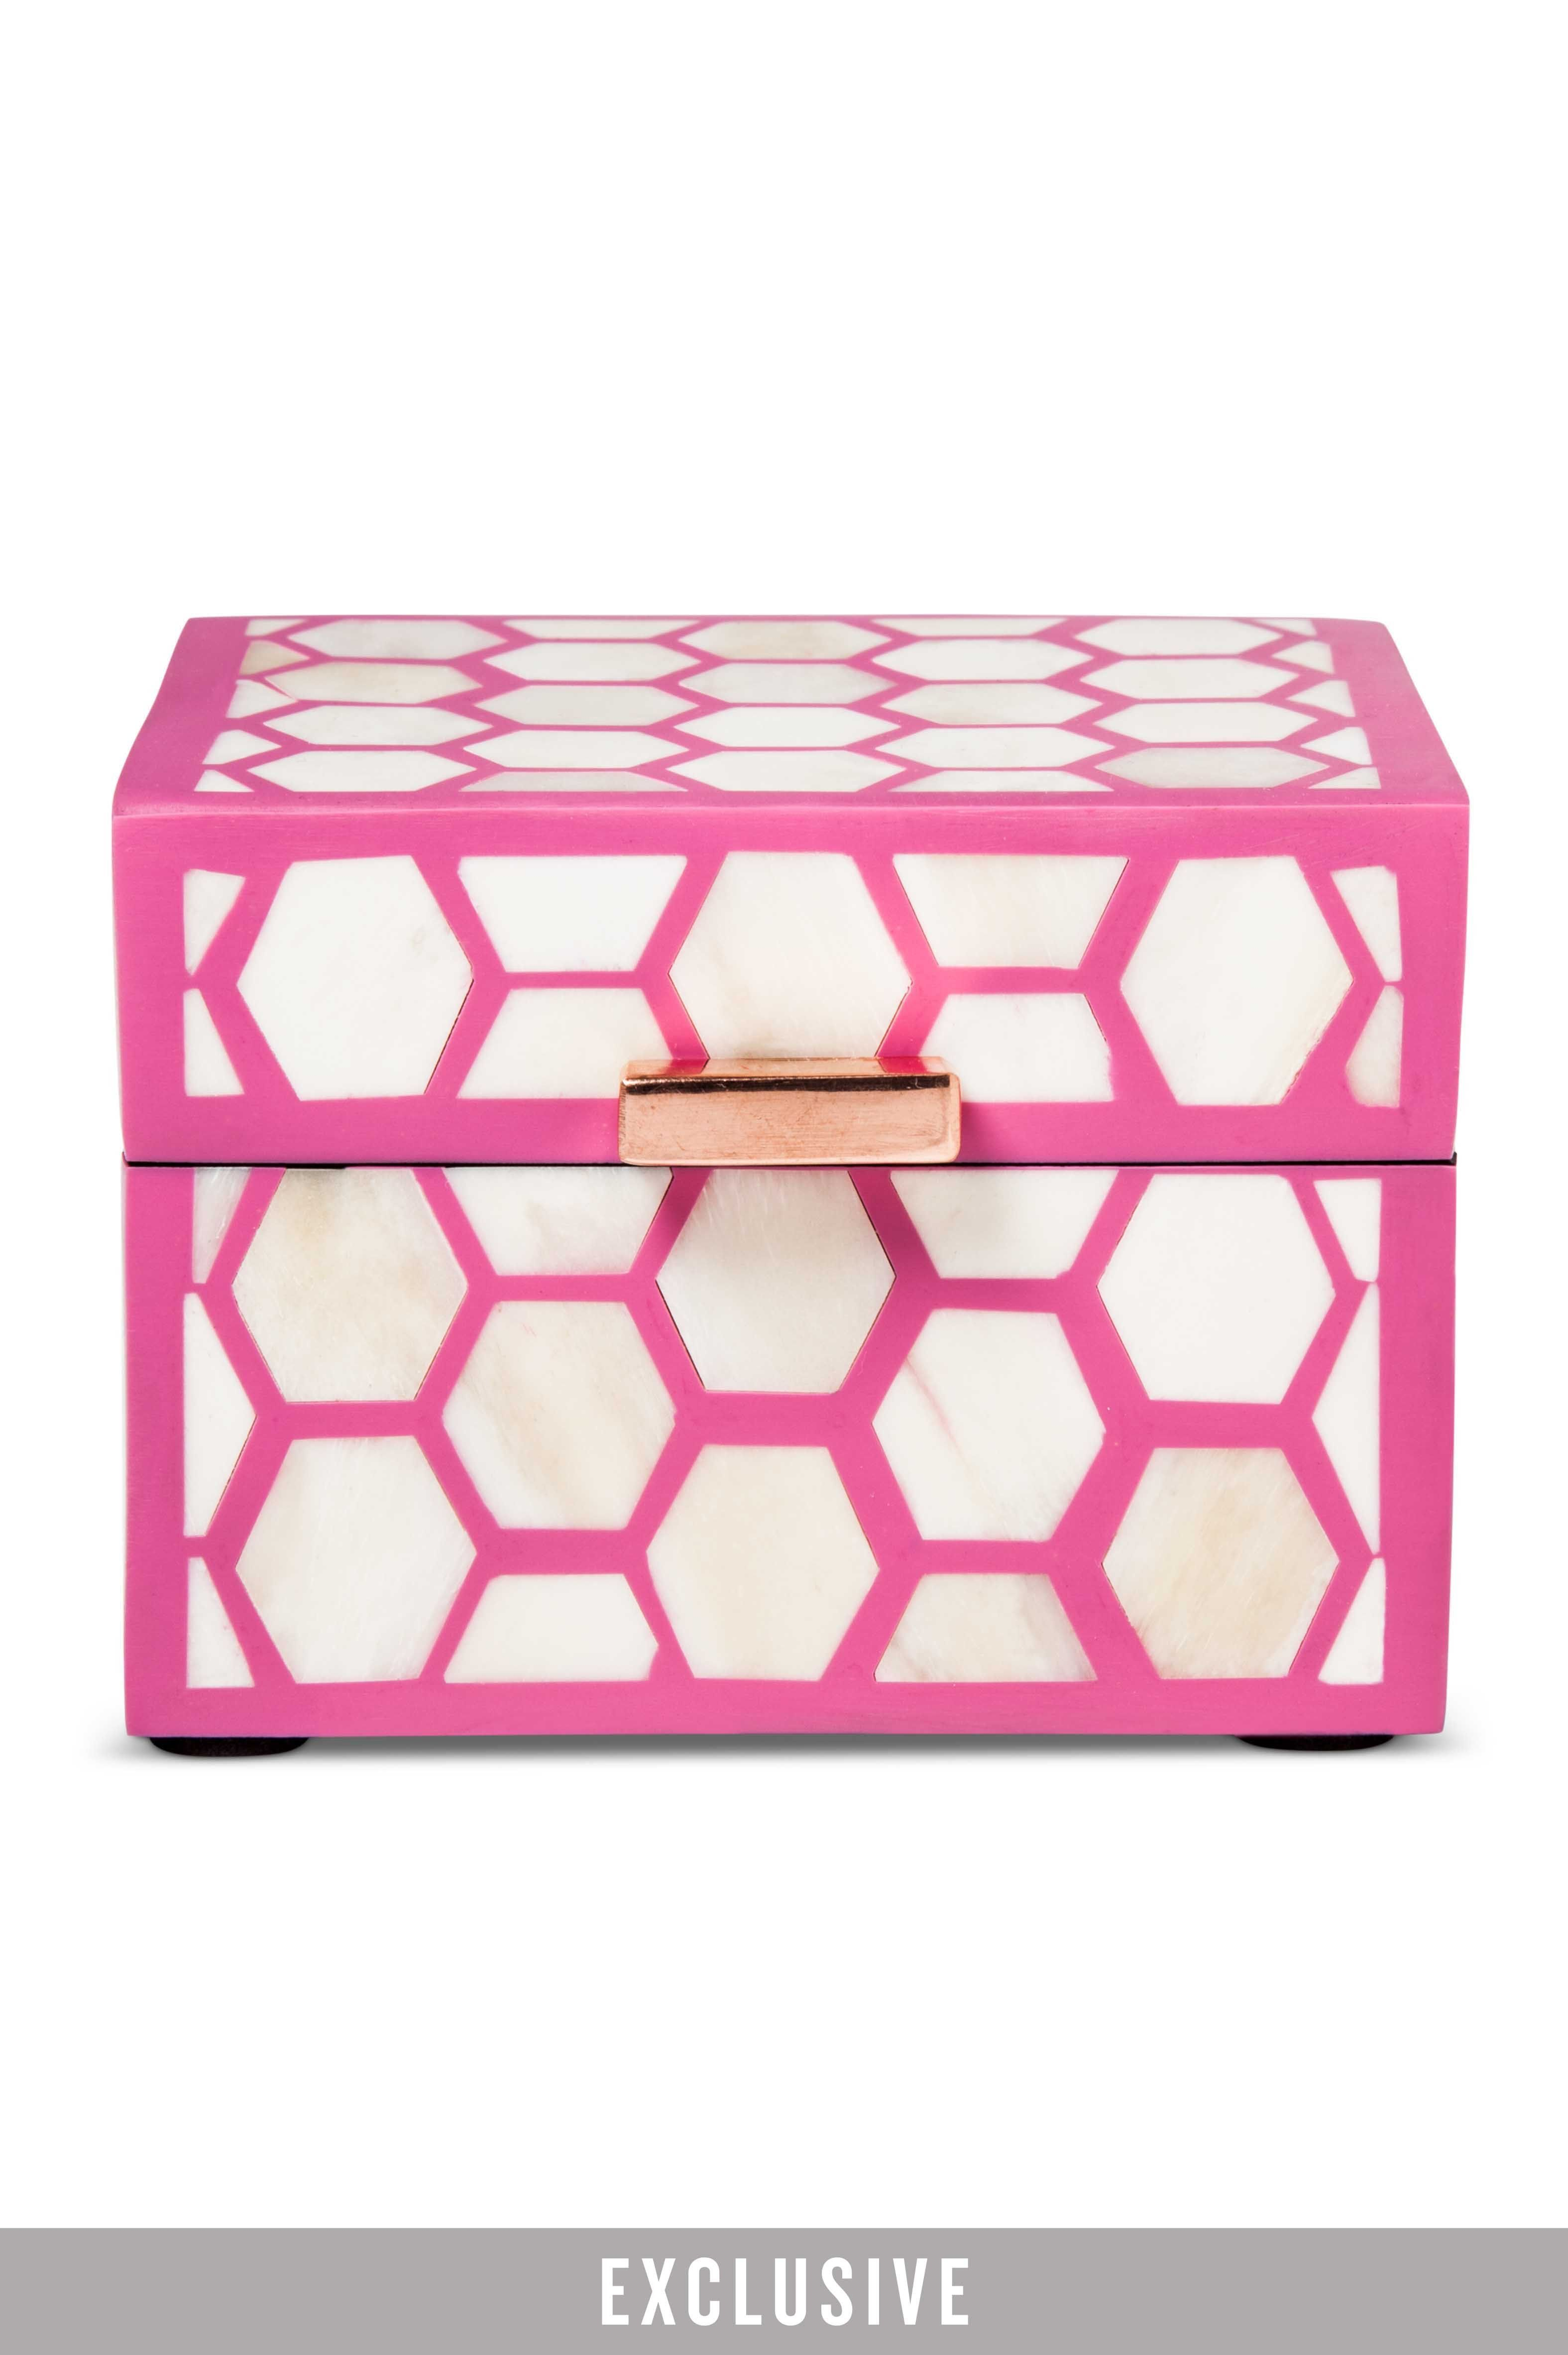 *Exclusive Hot Pink Inlaid Decorative Box